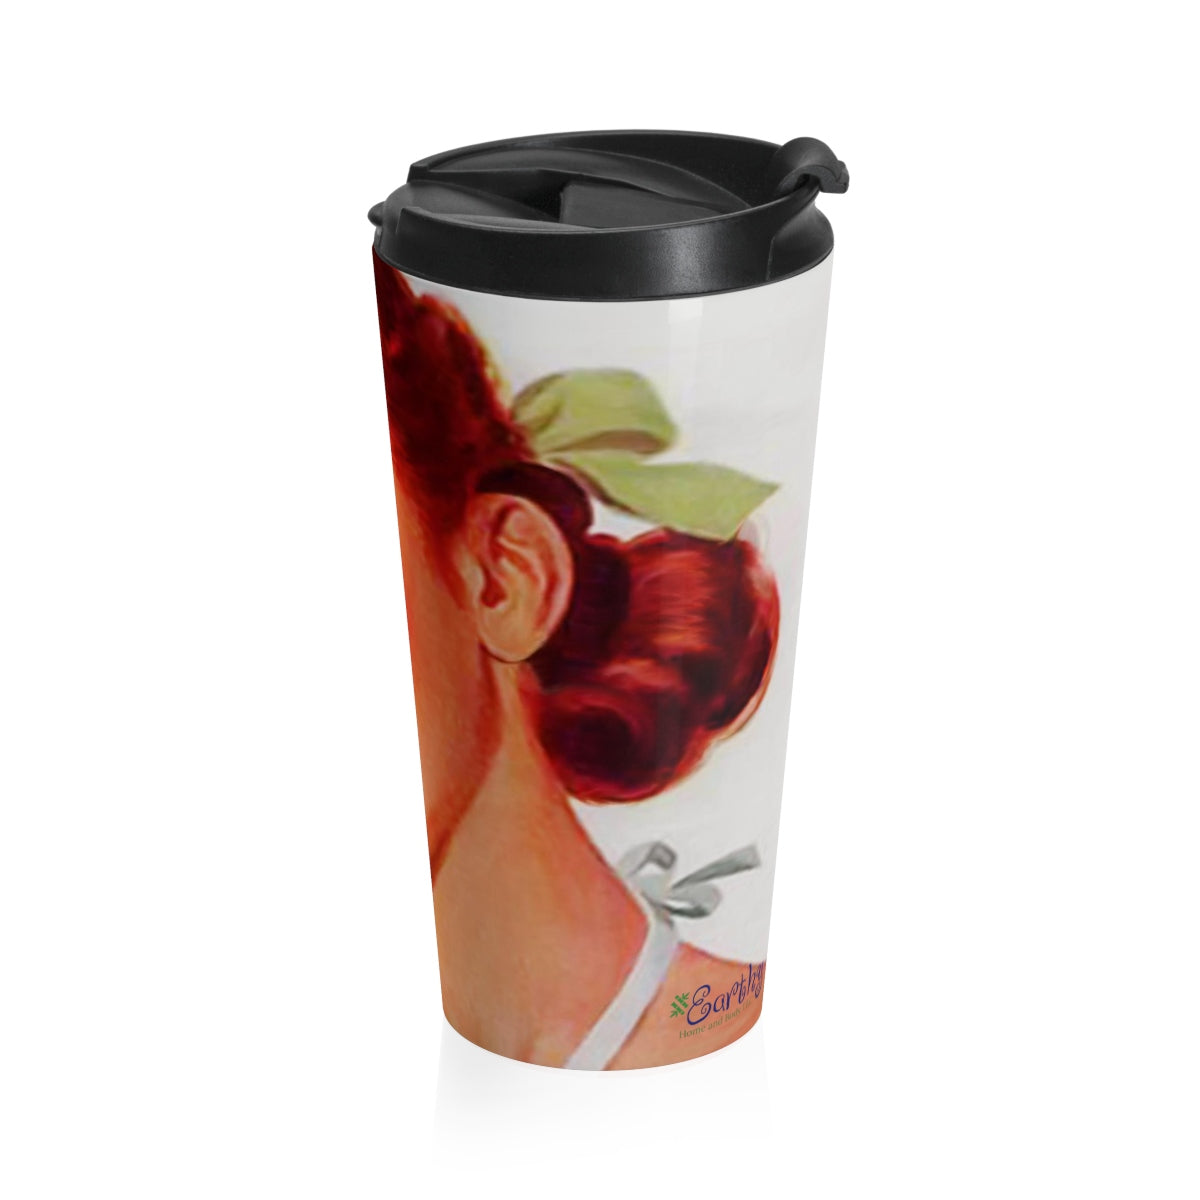 Stainless Steel Travel Mug - Retro Woman Series - Soda Girl